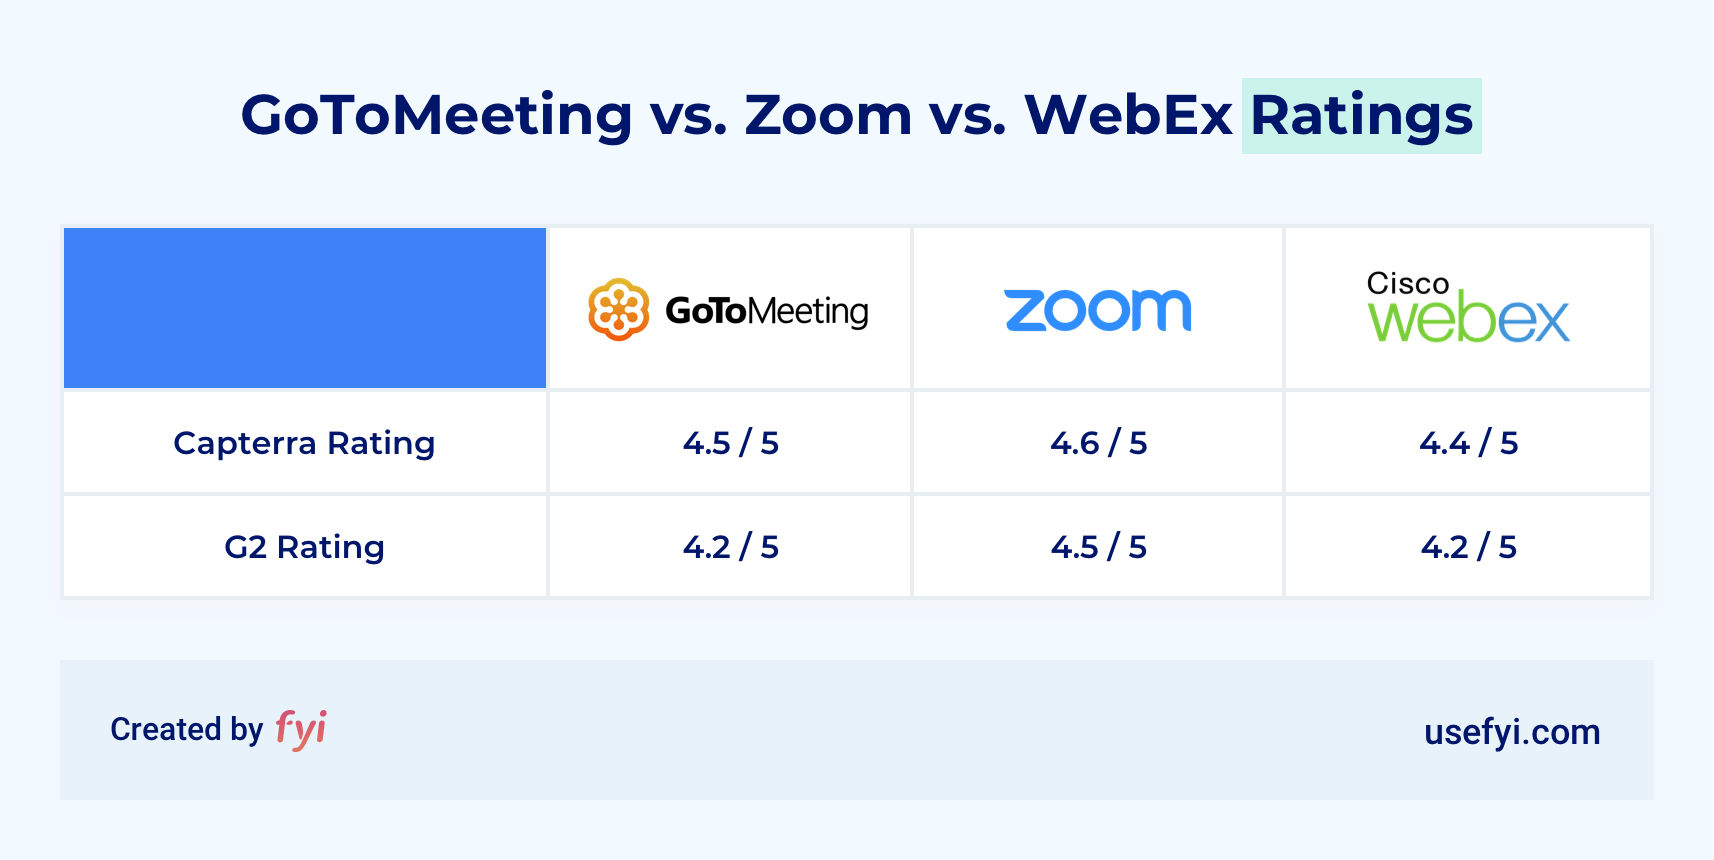 GoToMeeting vs Zoom vs WebEx Ratings